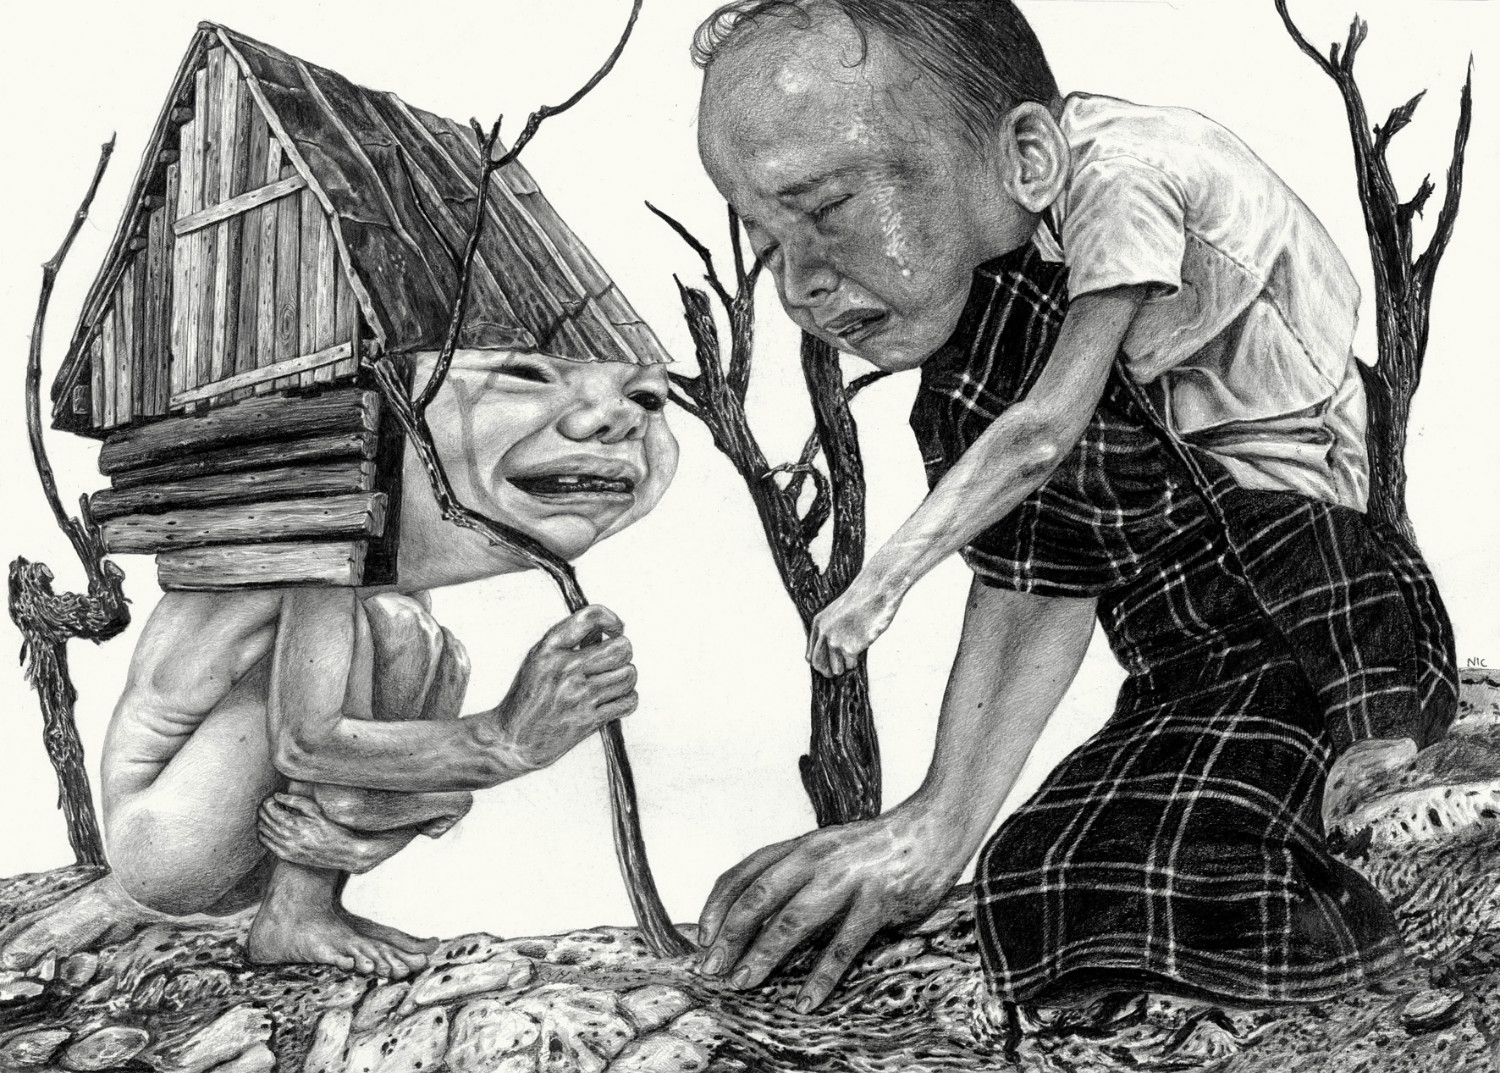 Bizarre Pencil Drawings